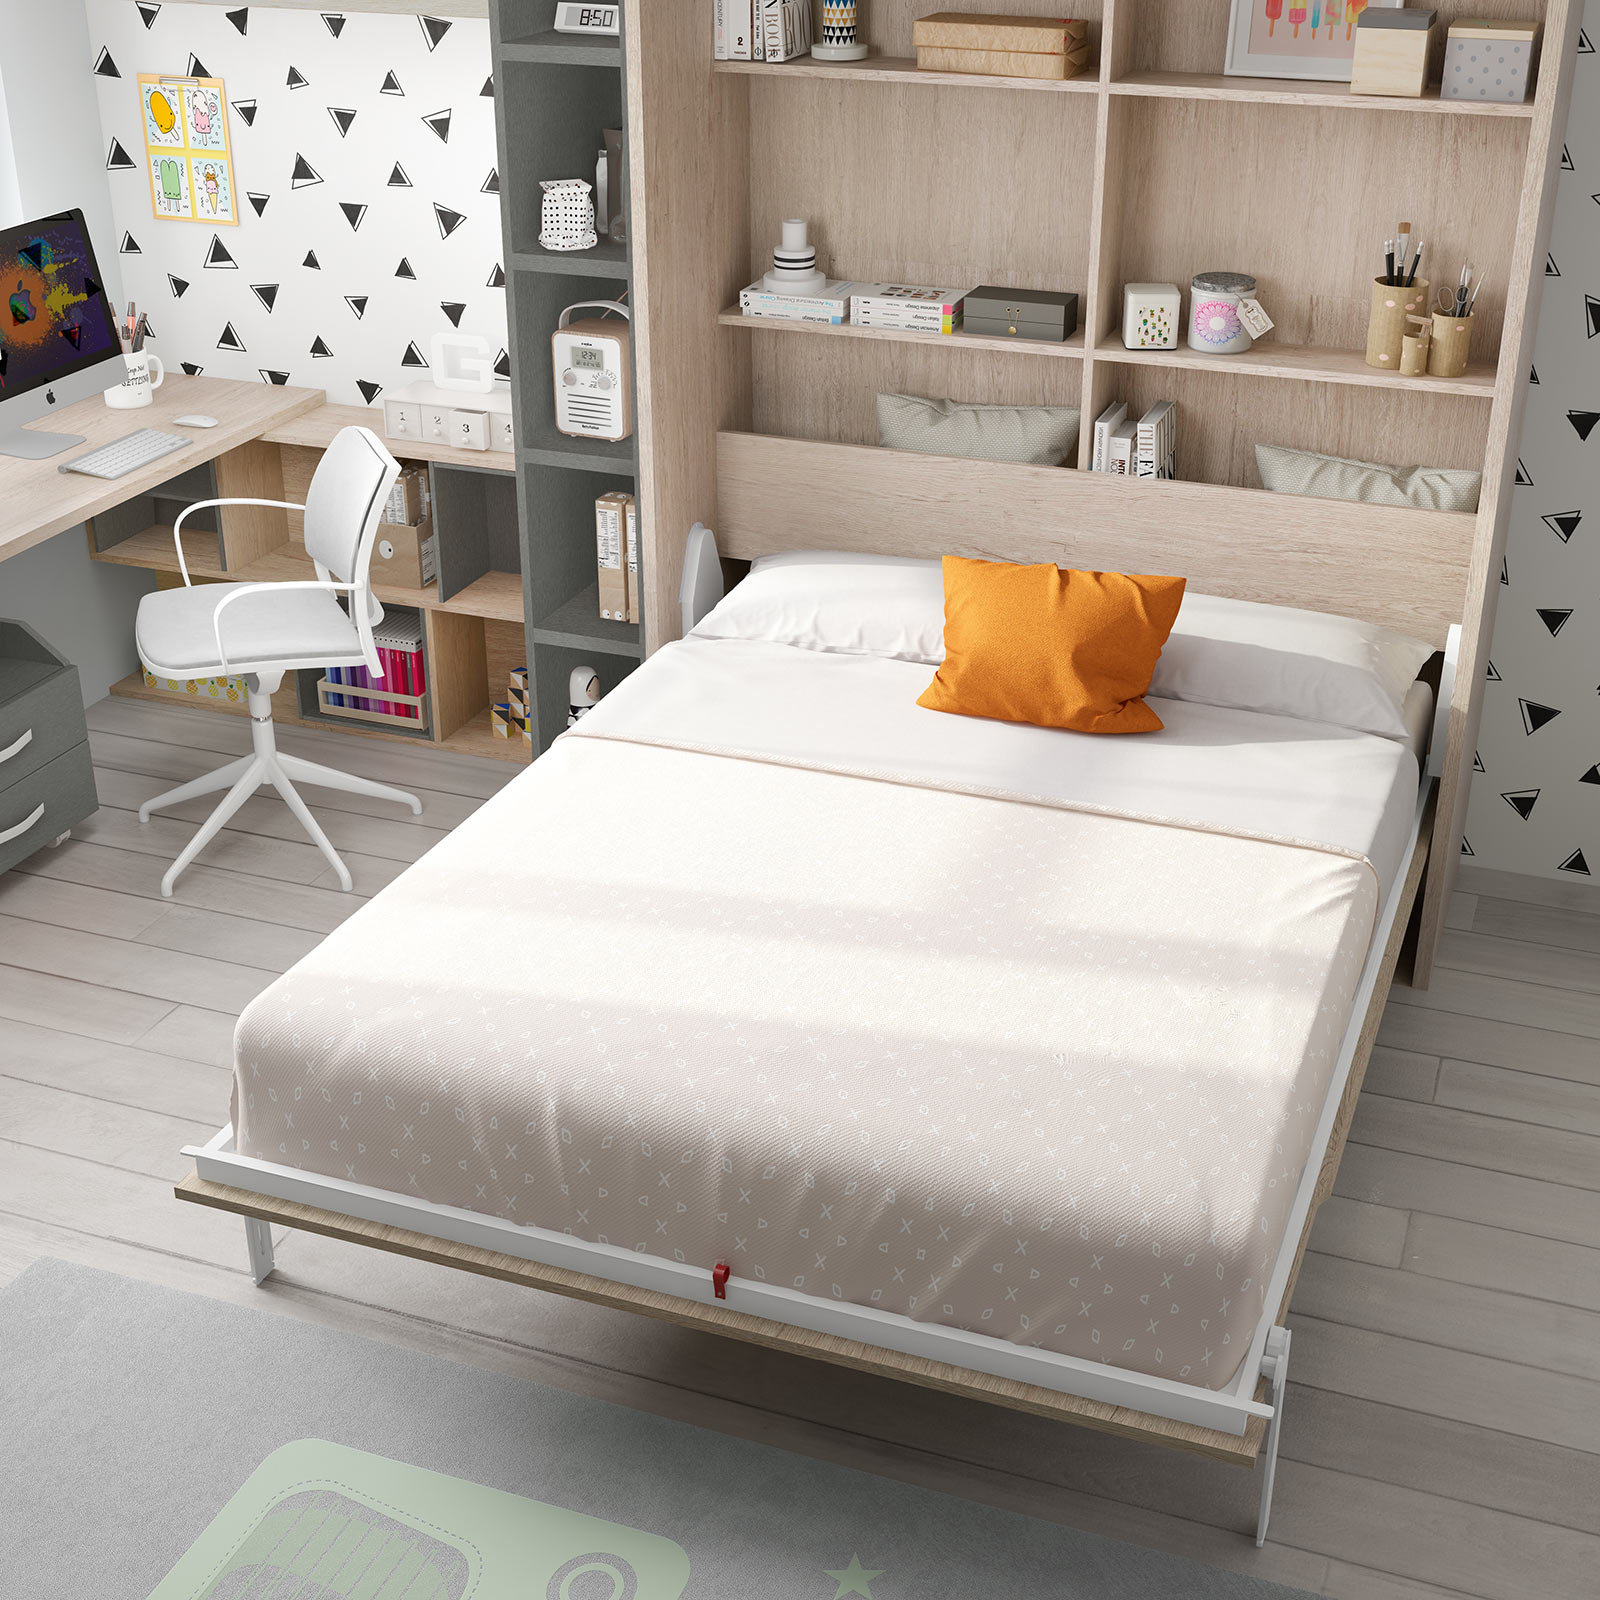 Space Wallbed The London Wallbed Company